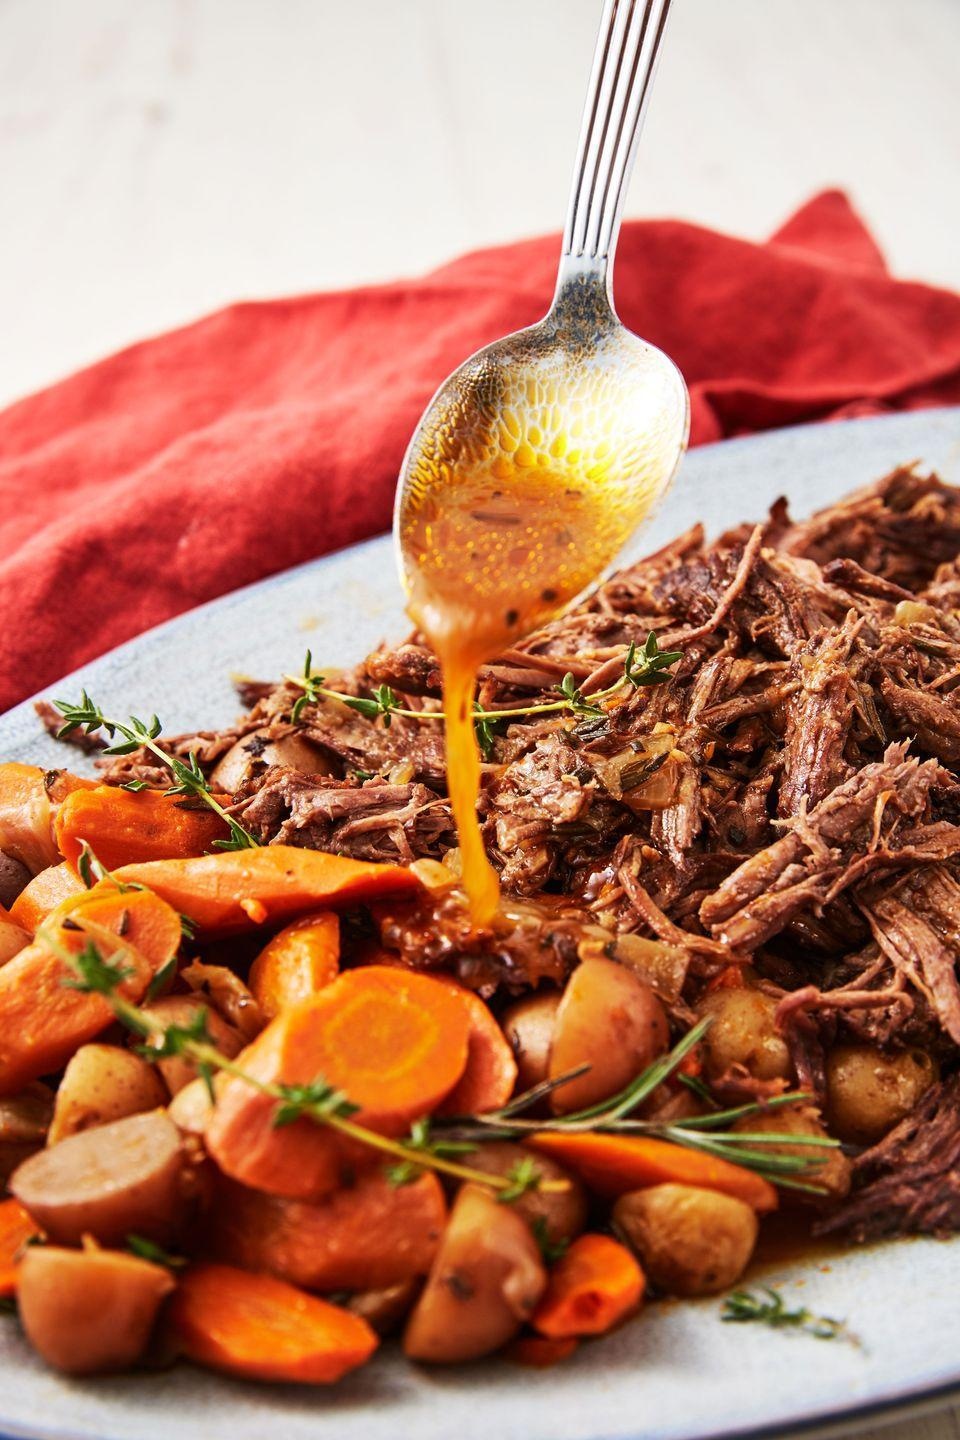 """<p>A roast doesn't always have to take forever. This one is perfectly tender with zero effort and much less time. </p><p>Get the recipe from <a href=""""https://www.delish.com/cooking/recipe-ideas/a25605916/instant-pot-pot-roast-recipe/"""" rel=""""nofollow noopener"""" target=""""_blank"""" data-ylk=""""slk:Delish"""" class=""""link rapid-noclick-resp"""">Delish</a>.</p>"""